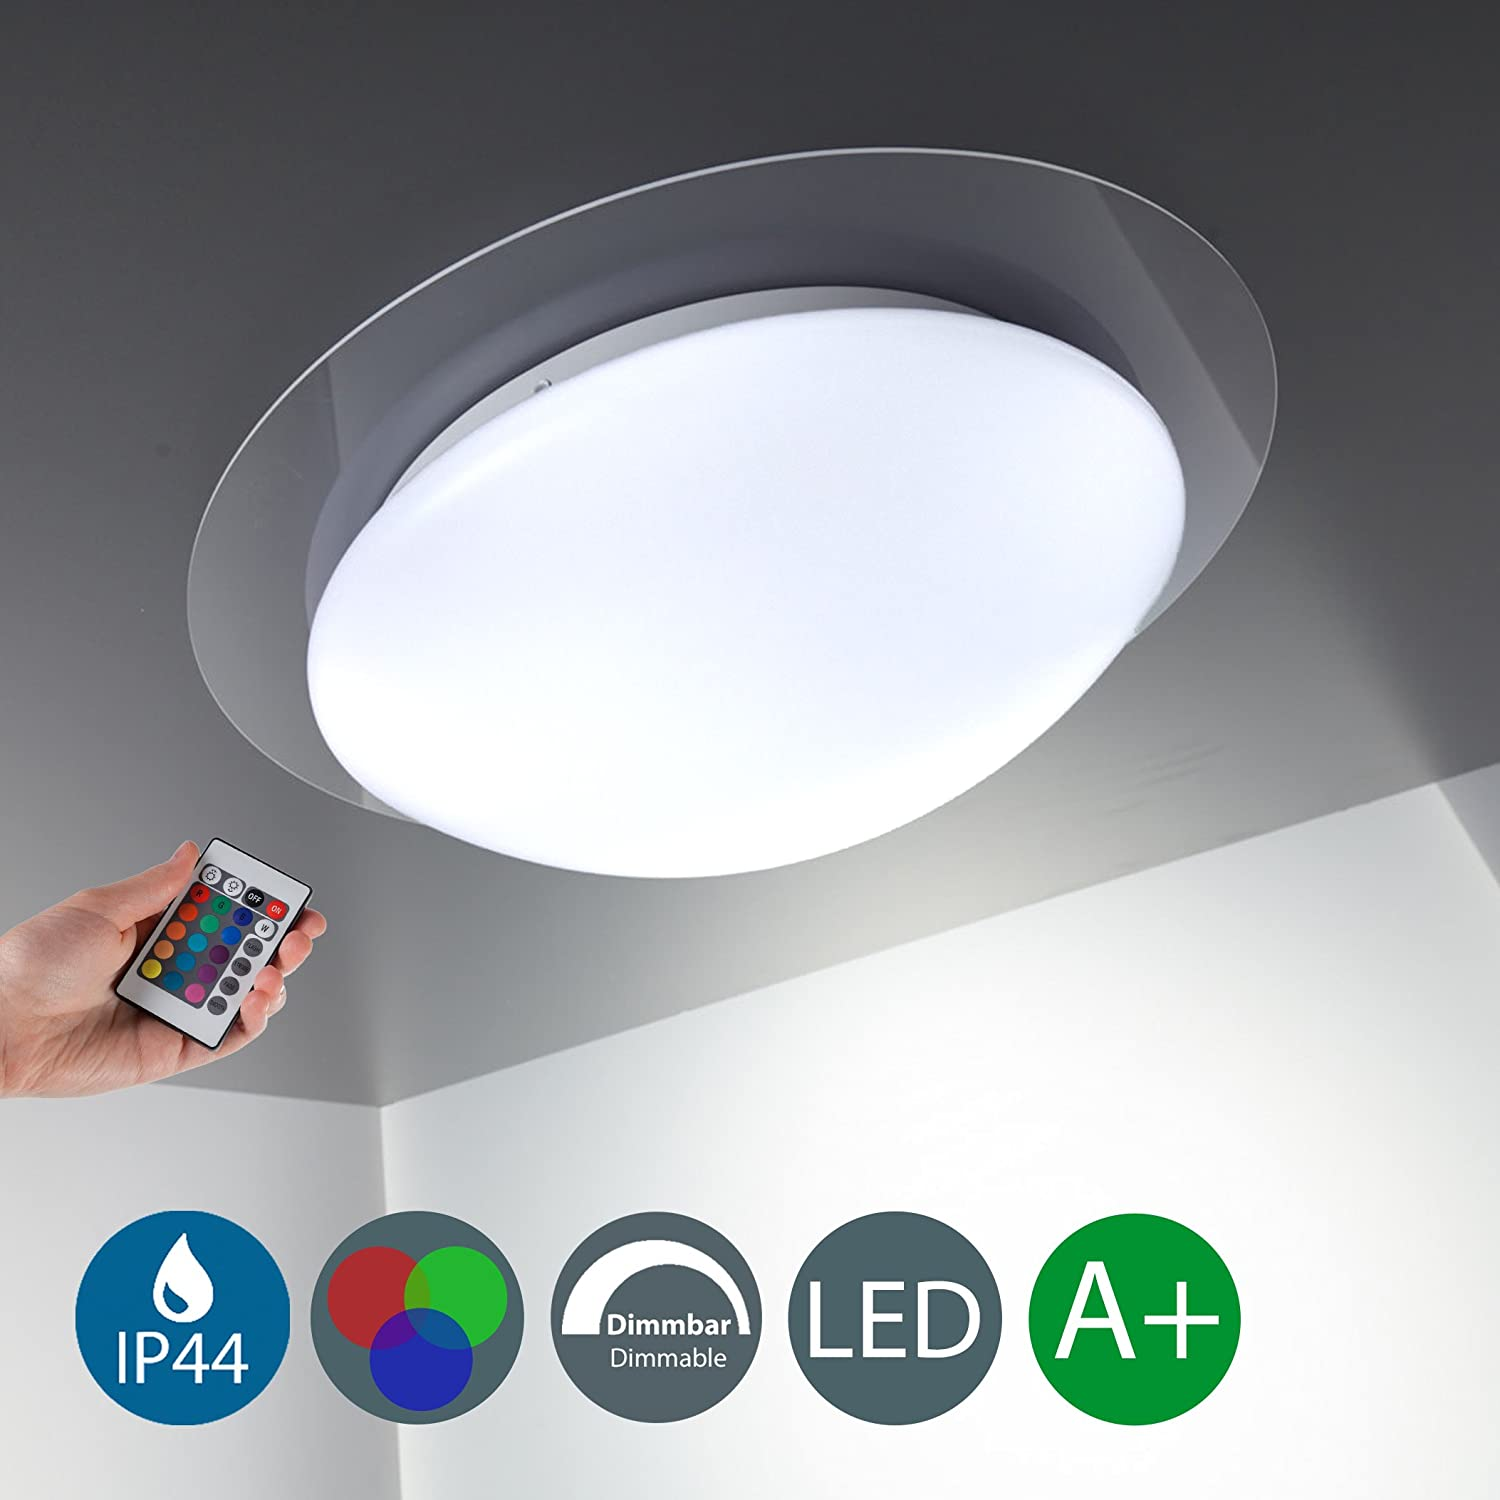 LED Bathroom Ceiling Light I Kitchen & Living room I Dimmable I 16 colours and 4 colour schemes I splash water proof I metal I acrylic design I 12 W I 230 V I IP44 [Energy Class A+] B.K.Licht BKL1025